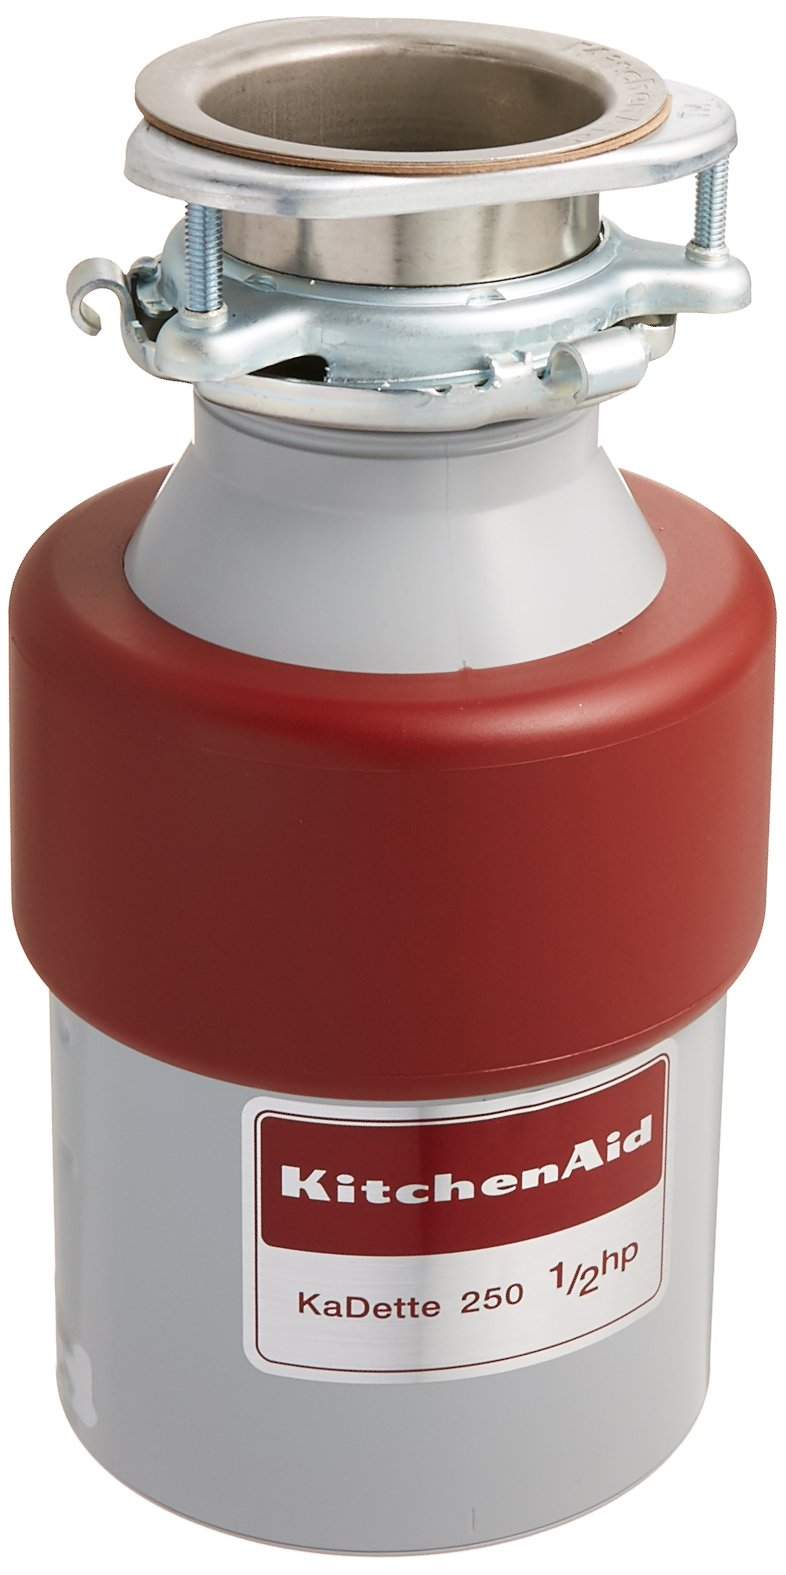 Kitchen Aid (84211643) KCDB250G 1/2 HP Continuous Feed Garbage Disposal by KitchenAid